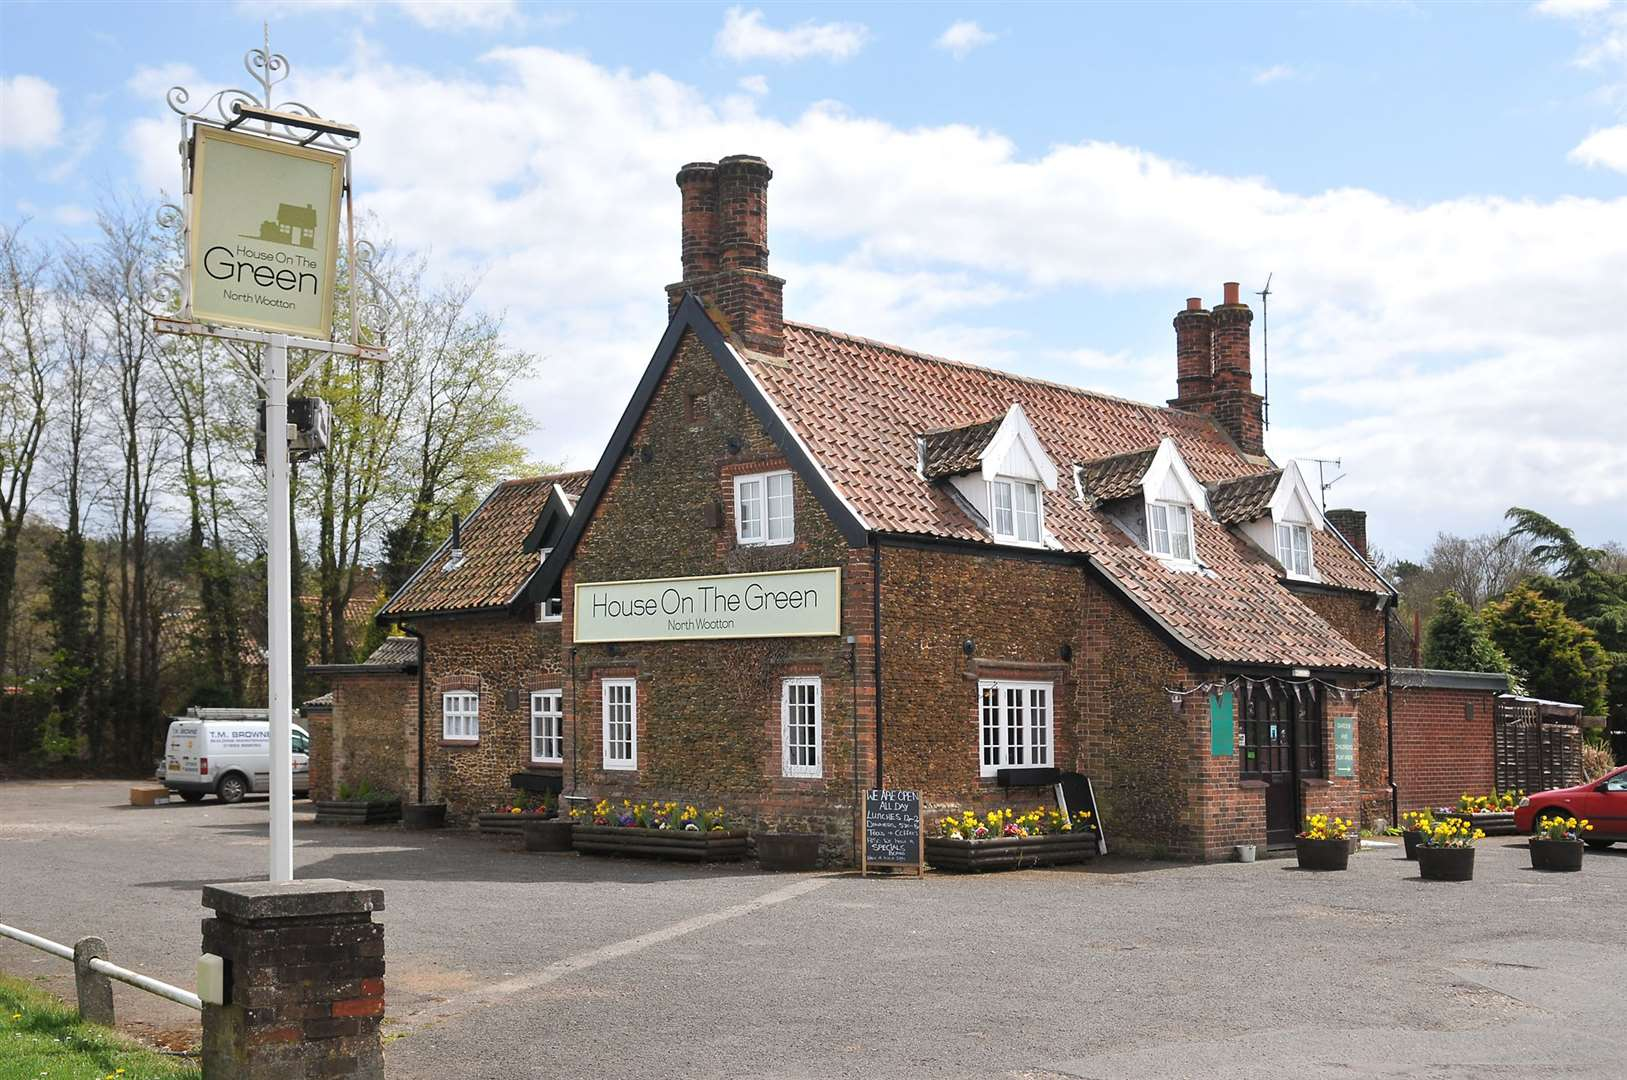 House On The Green pub in North Wootton